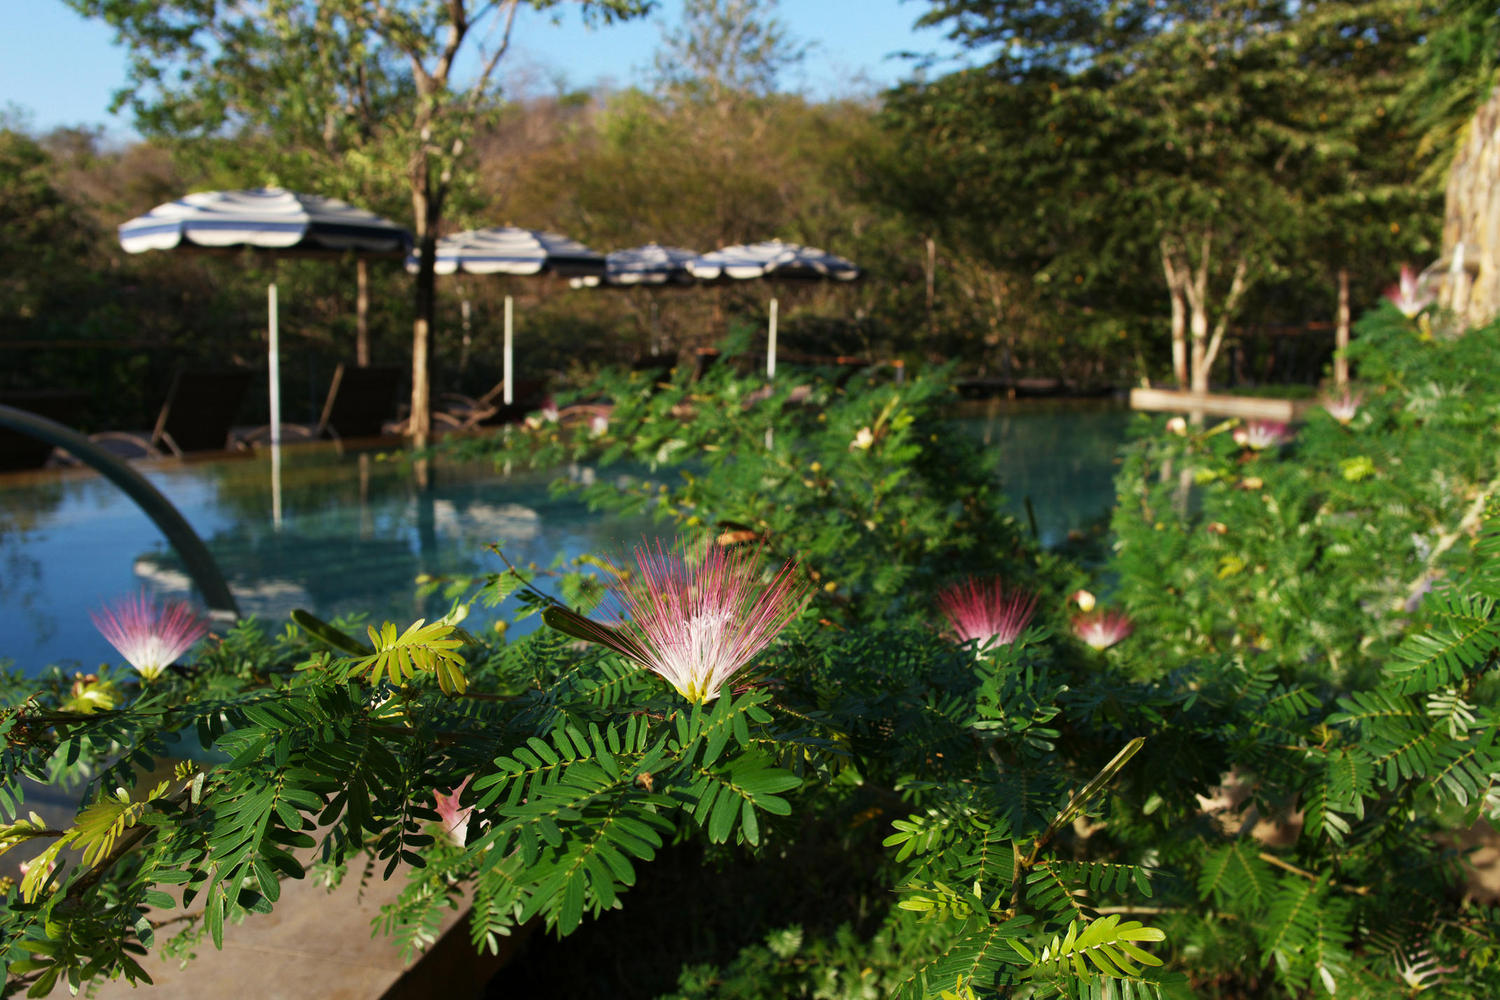 Flowers blooming near pool in Rio Perdido, Tenorio